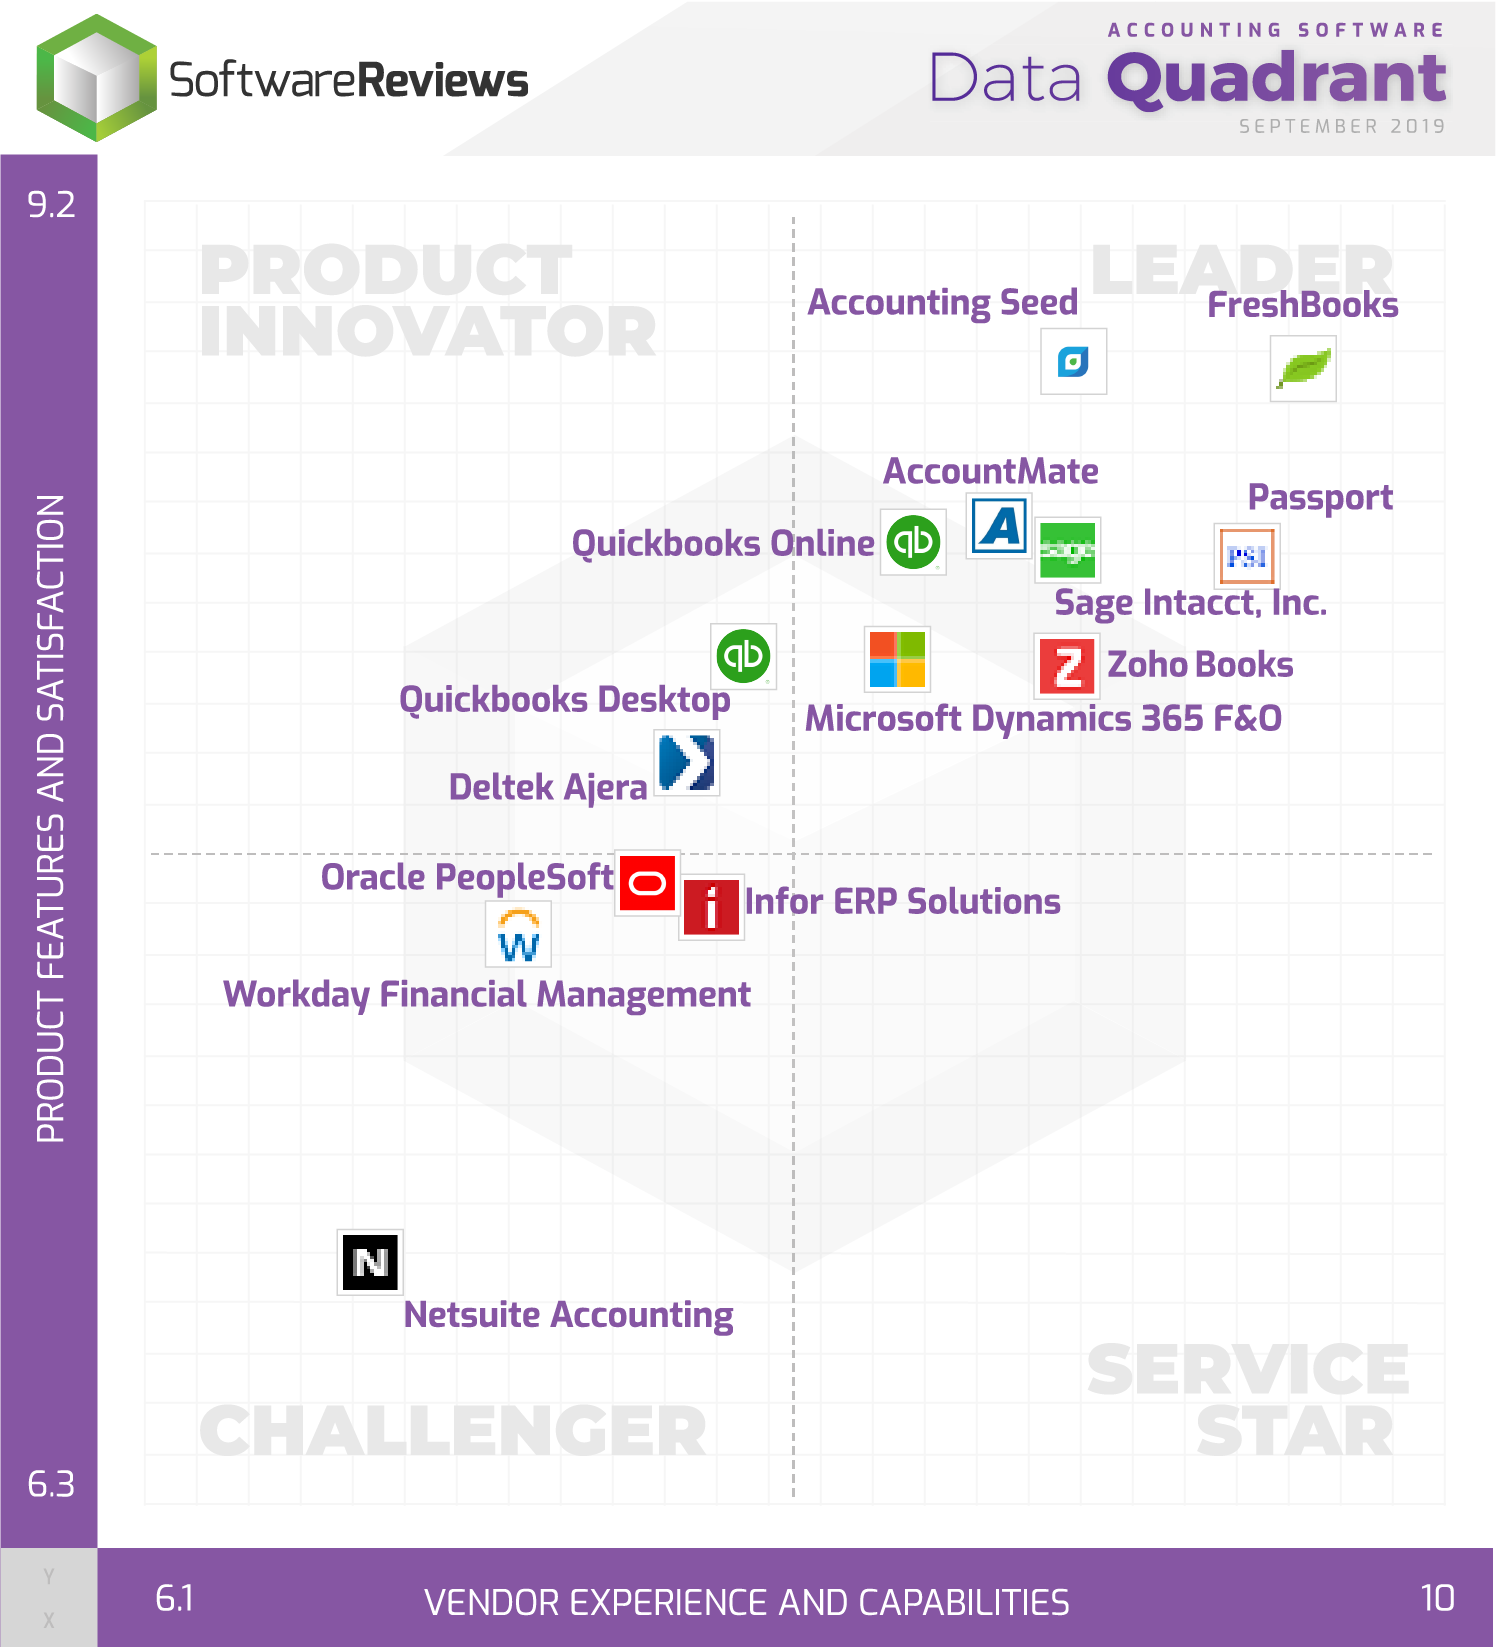 Accounting Software Data Quadrant